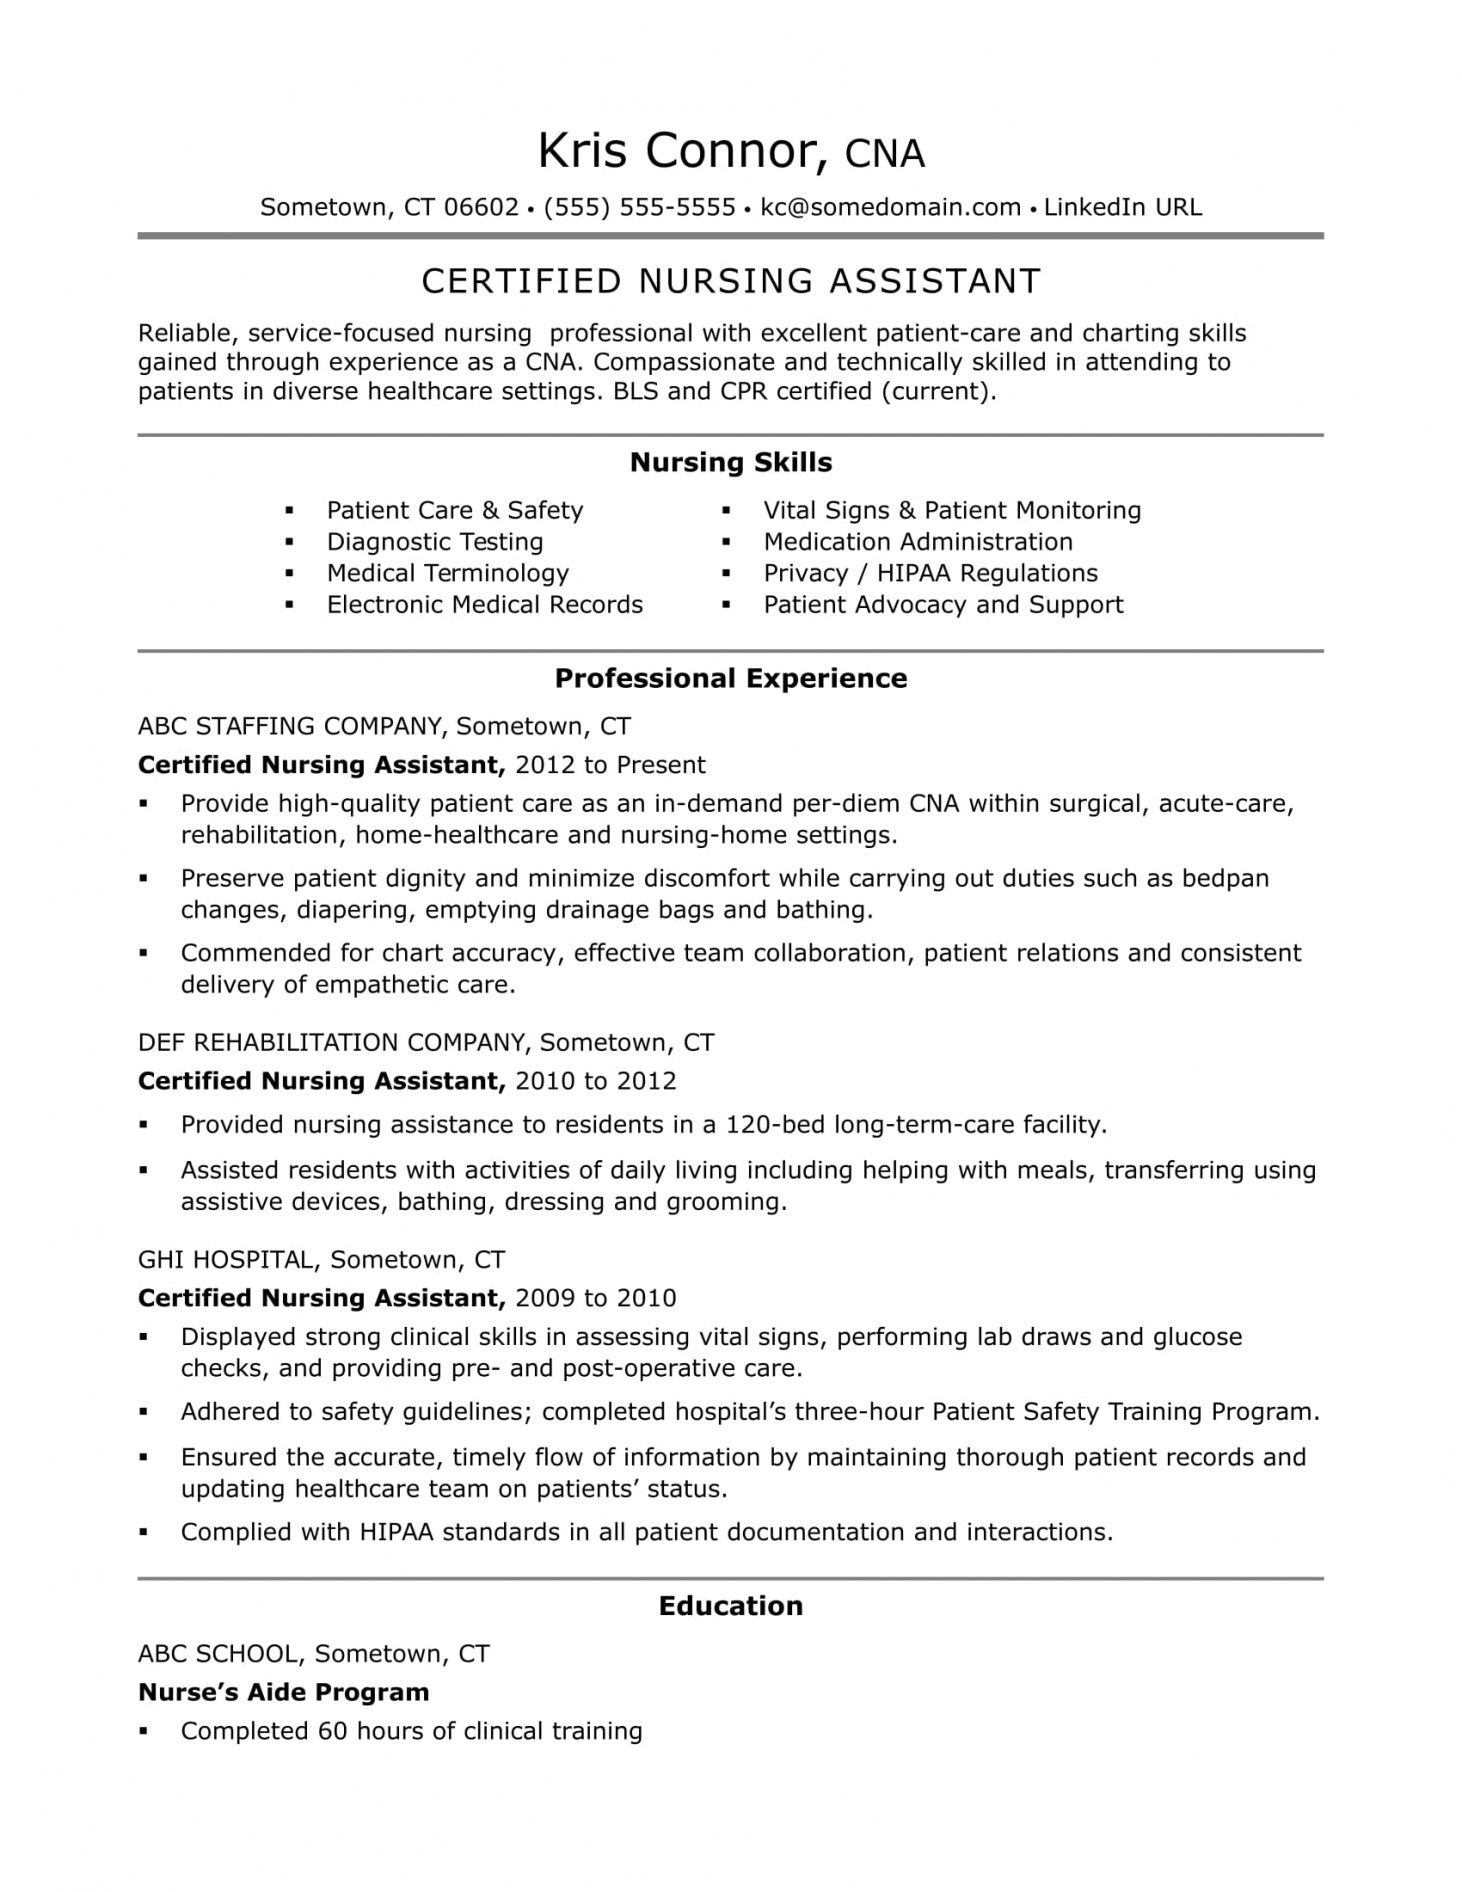 Cna Resume Examples: Skills For Cnas | Monster